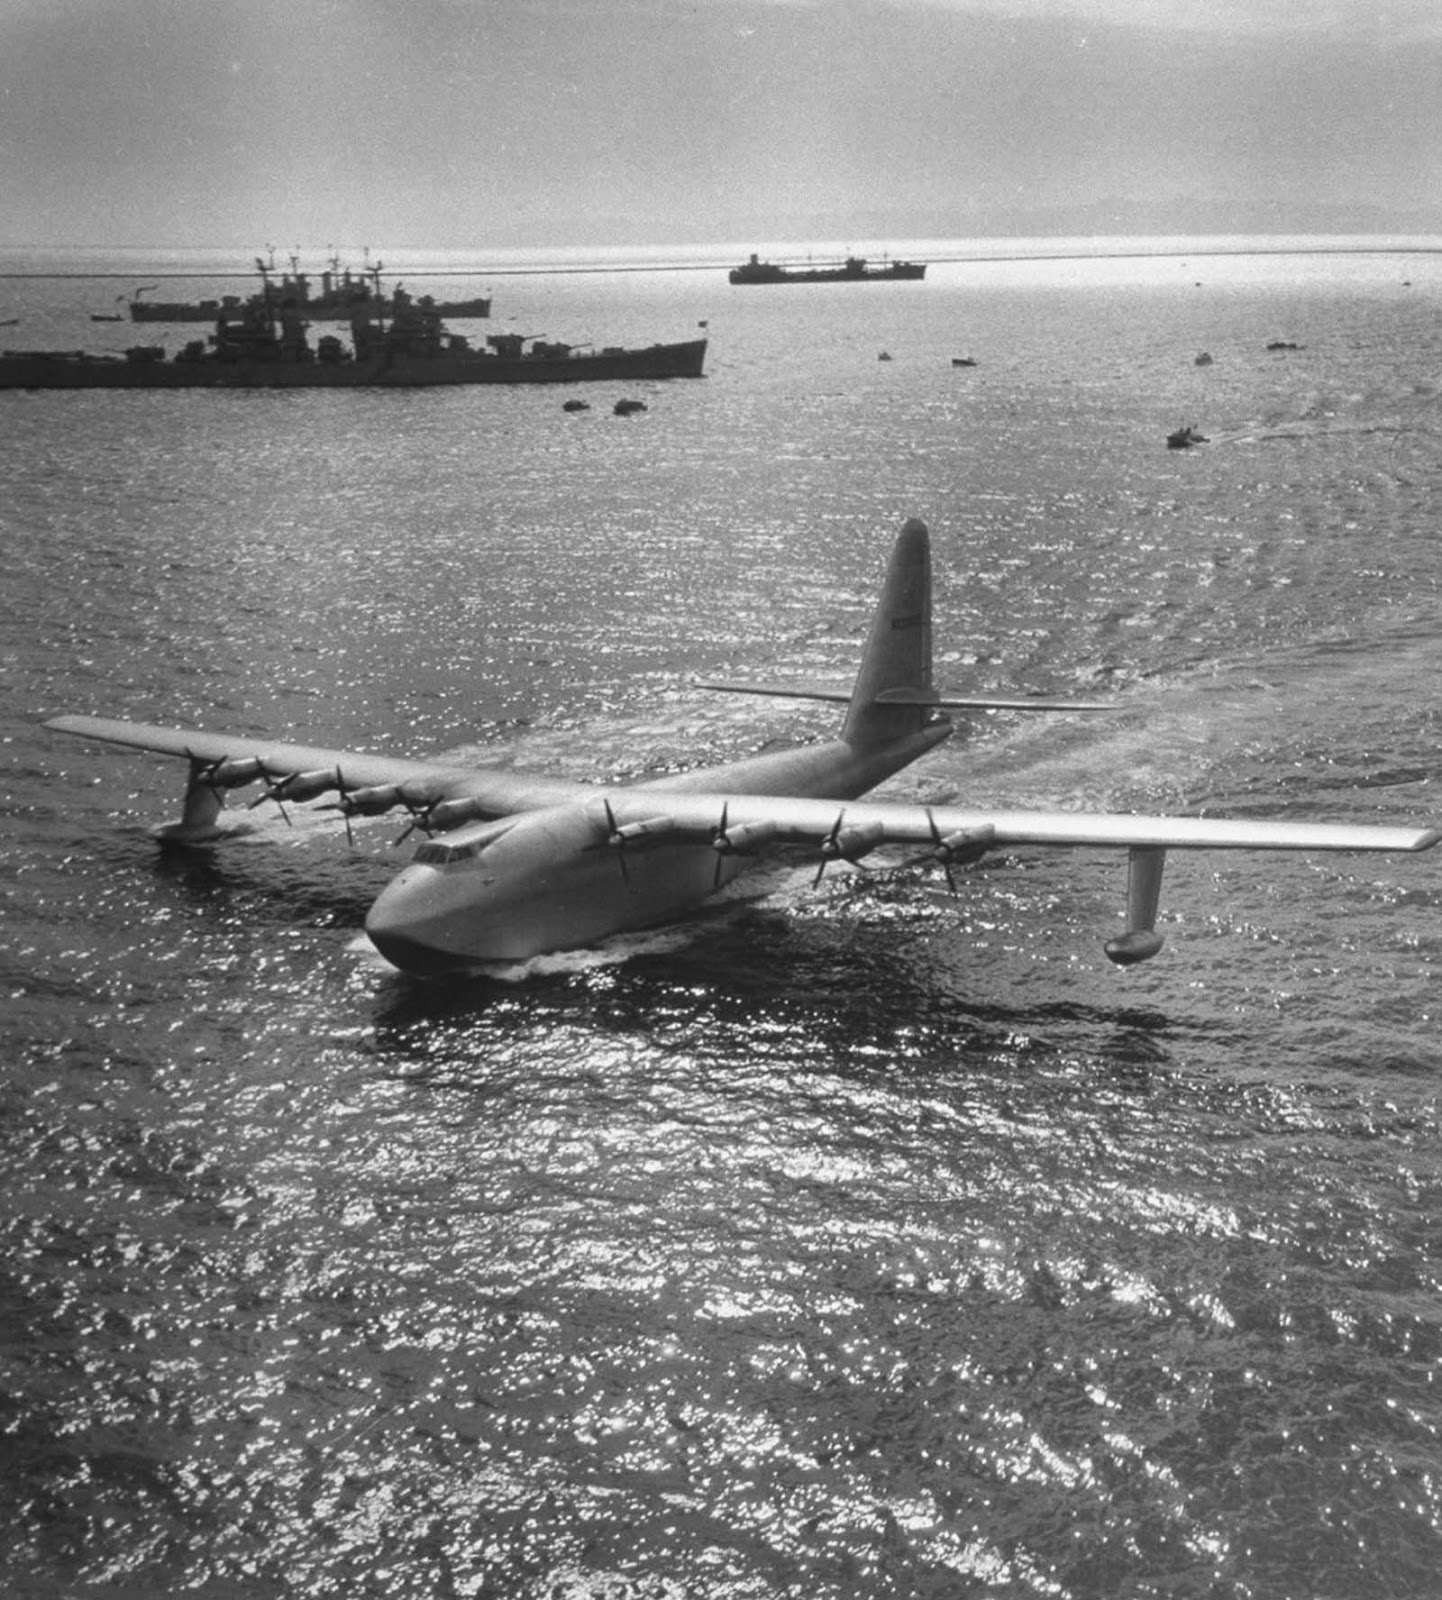 The H-4 also carried seven invited guests from the press corps and an additional seven industry representatives. In total, thirty-six people were on board.